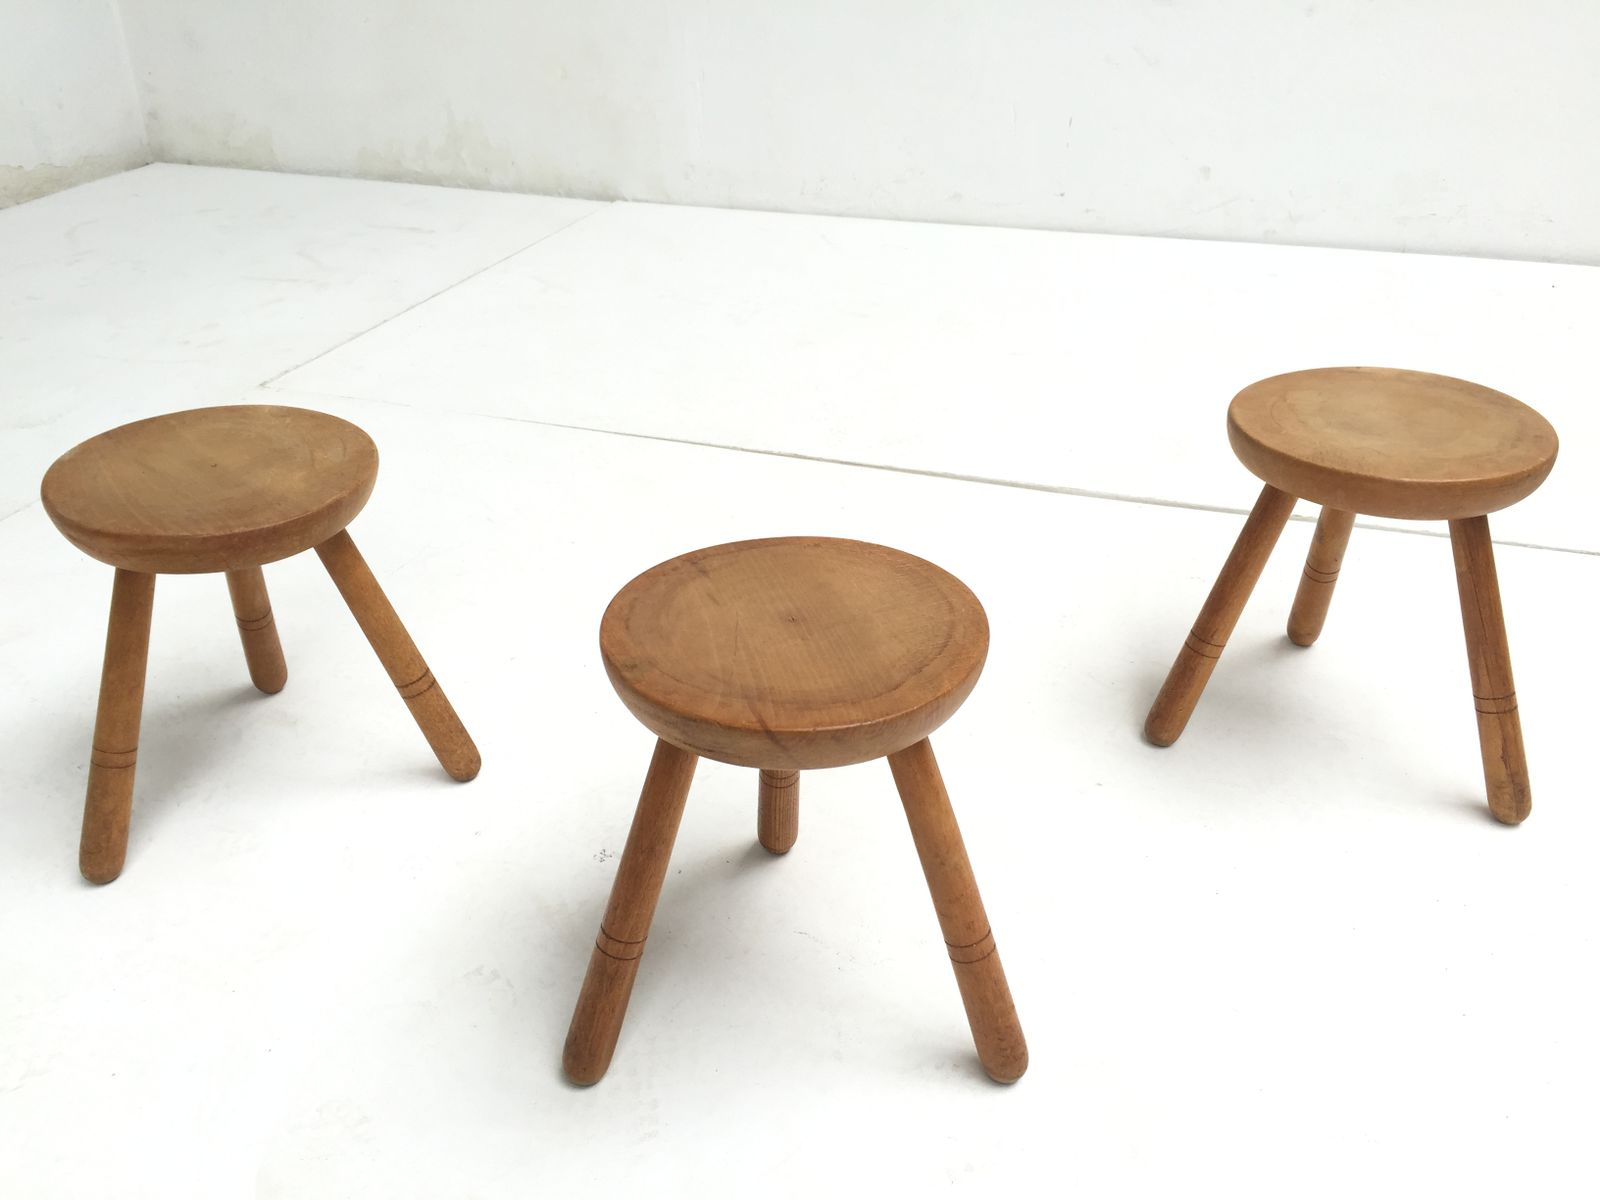 Superb img of Vintage Birch Wood Stools 1970s Set of 3 for sale at Pamono with #734A30 color and 1600x1200 pixels